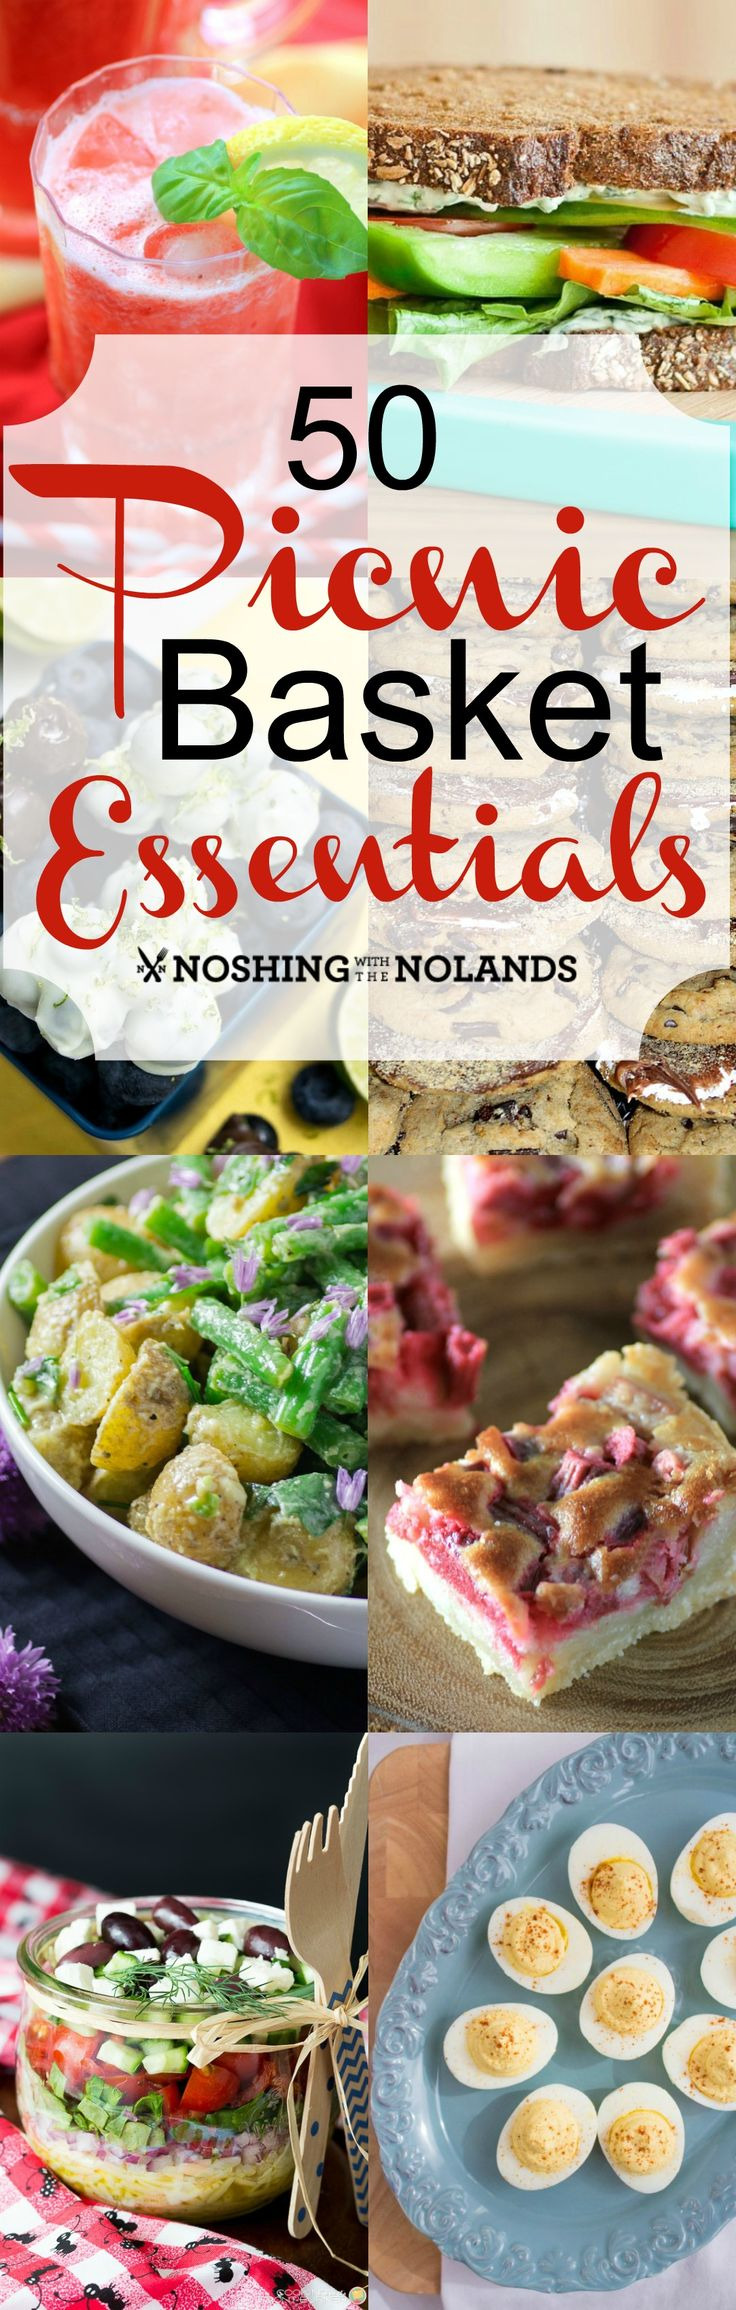 50 Picnic Basket Essentials form Noshing With the Nolands - You'll find everything you need for your next picnic this summer including drinks, salads, sandwiches and much more!: